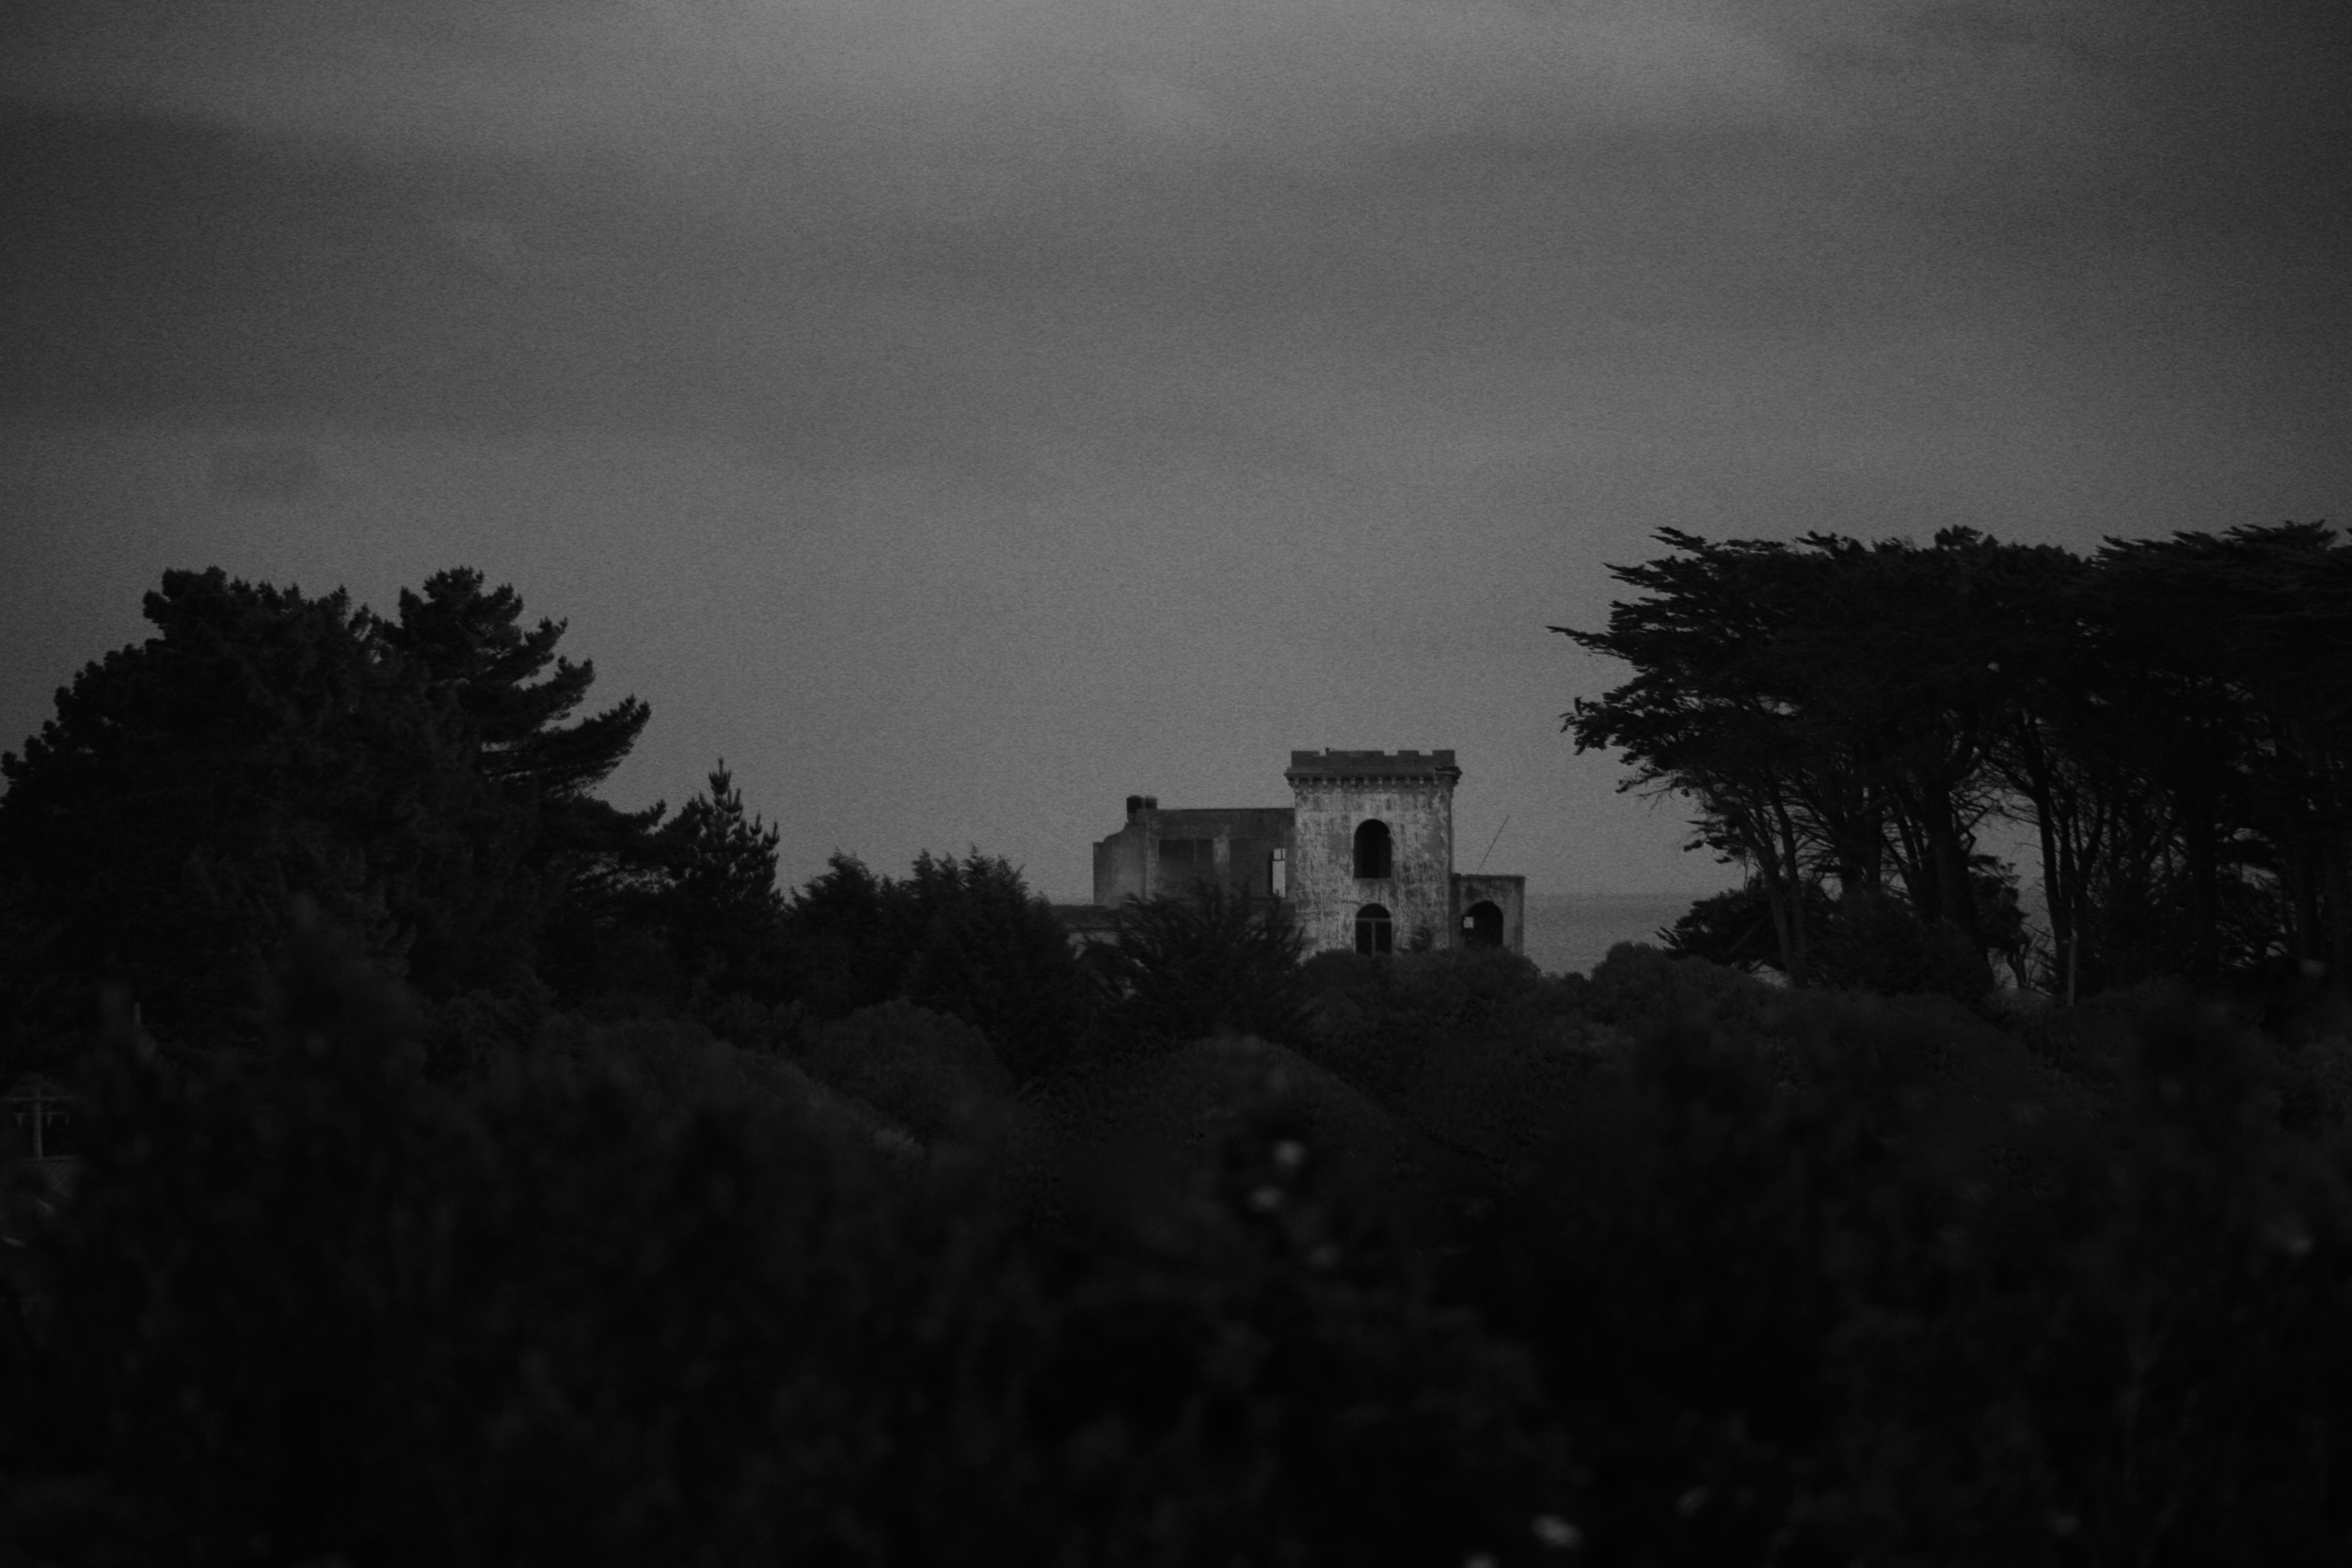 Cargill's Castle, black and white photography, Dunedin.